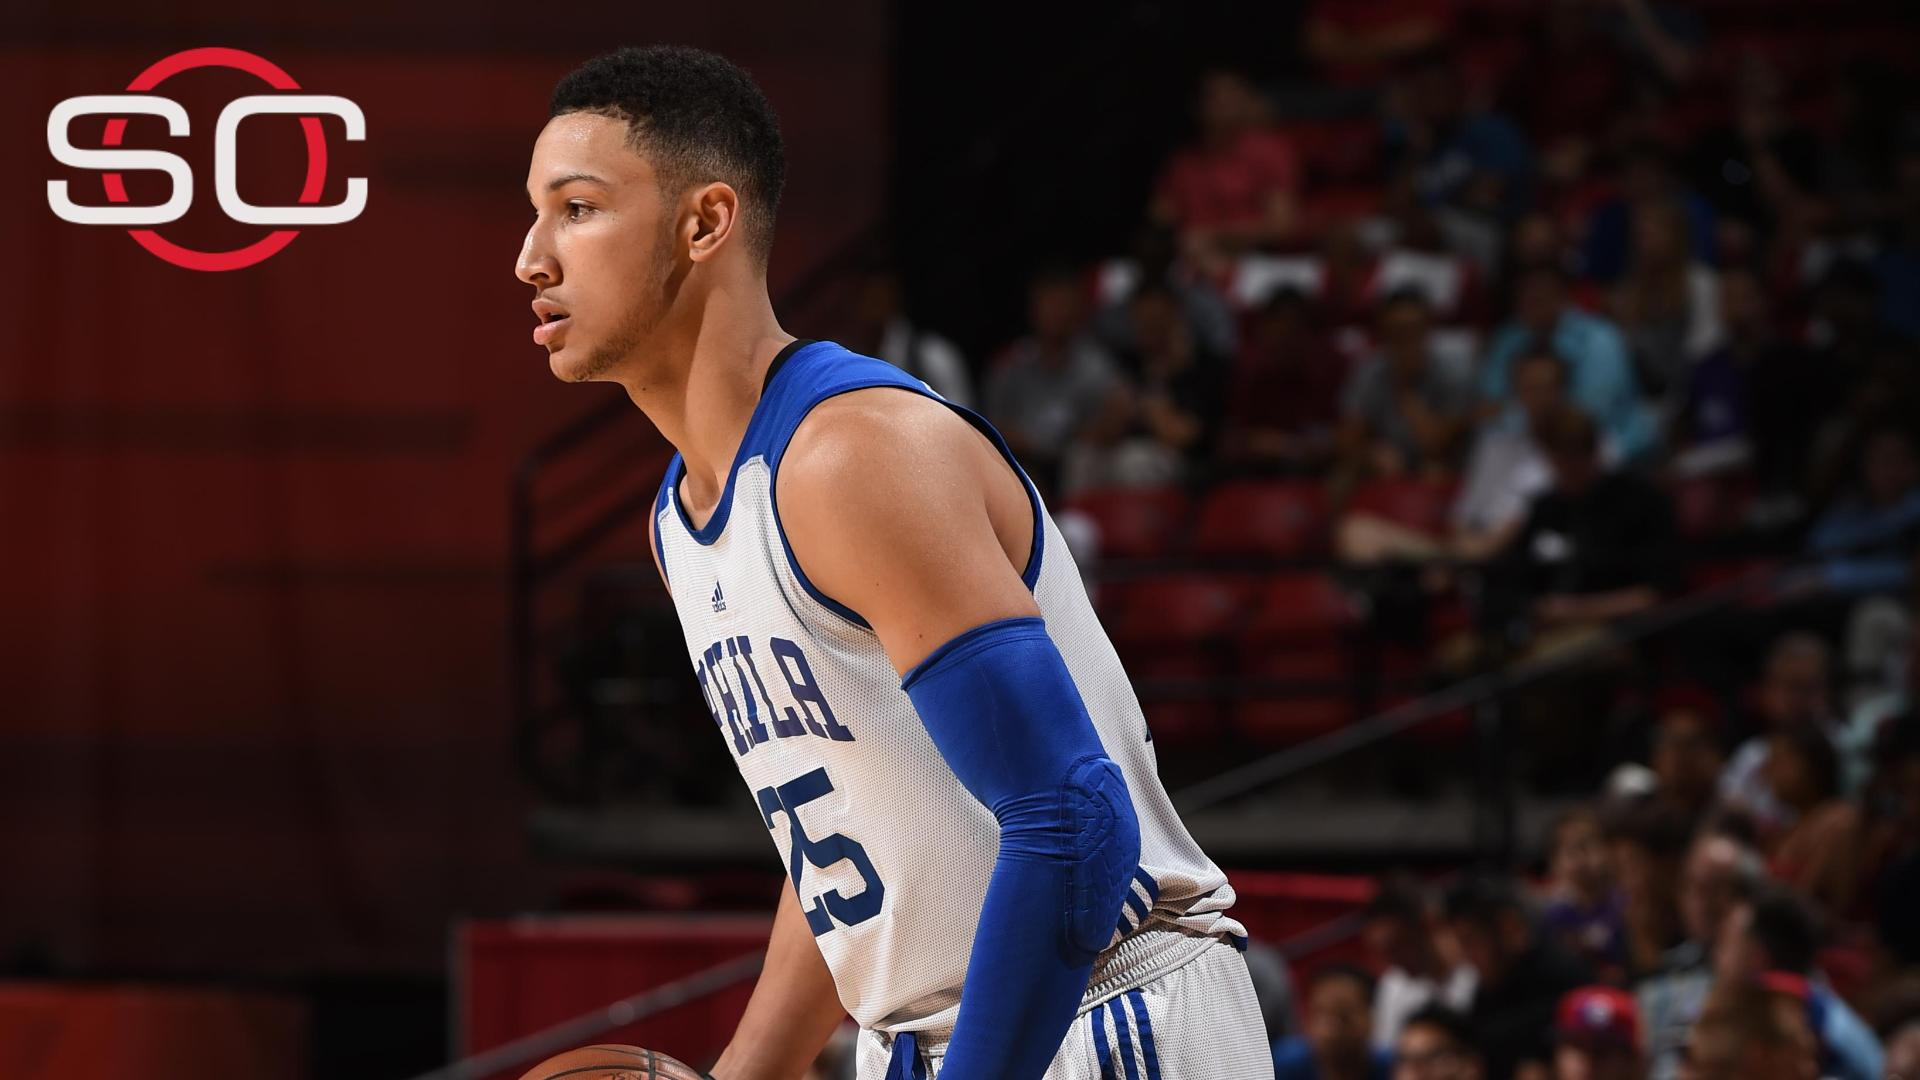 Simmons scores 18 in loss to Bulls